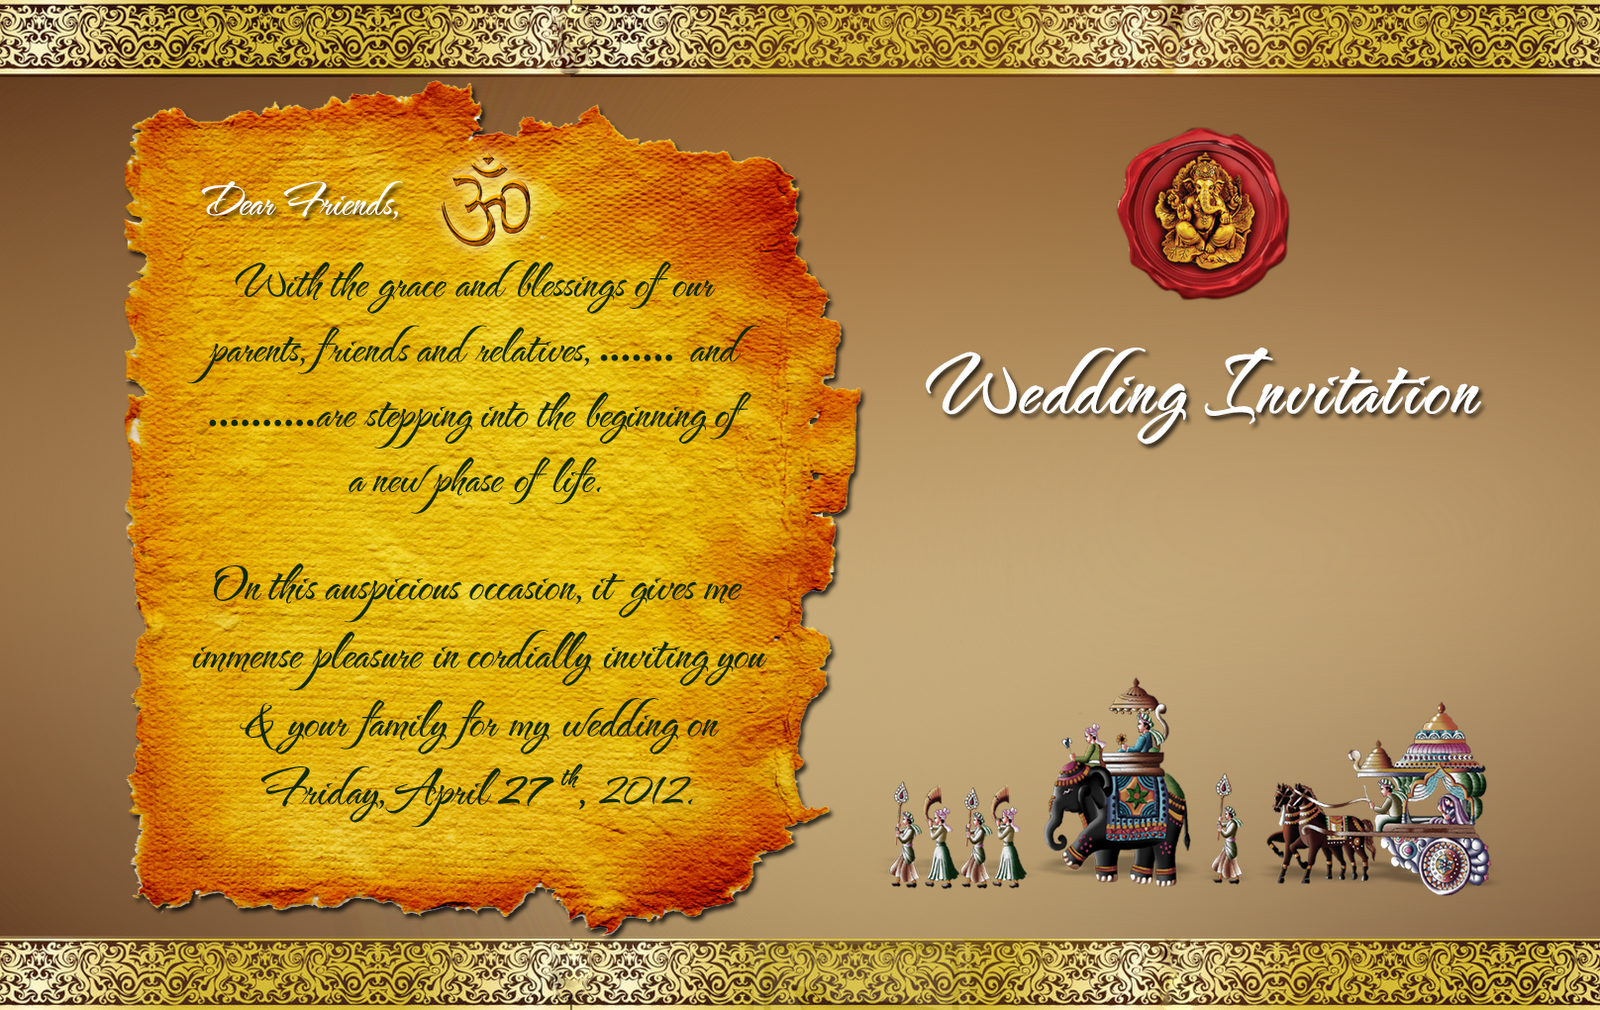 Indian Wedding Card Design Psd Files Free Downloadwedding Card - Card template free: online wedding invitation cards templates